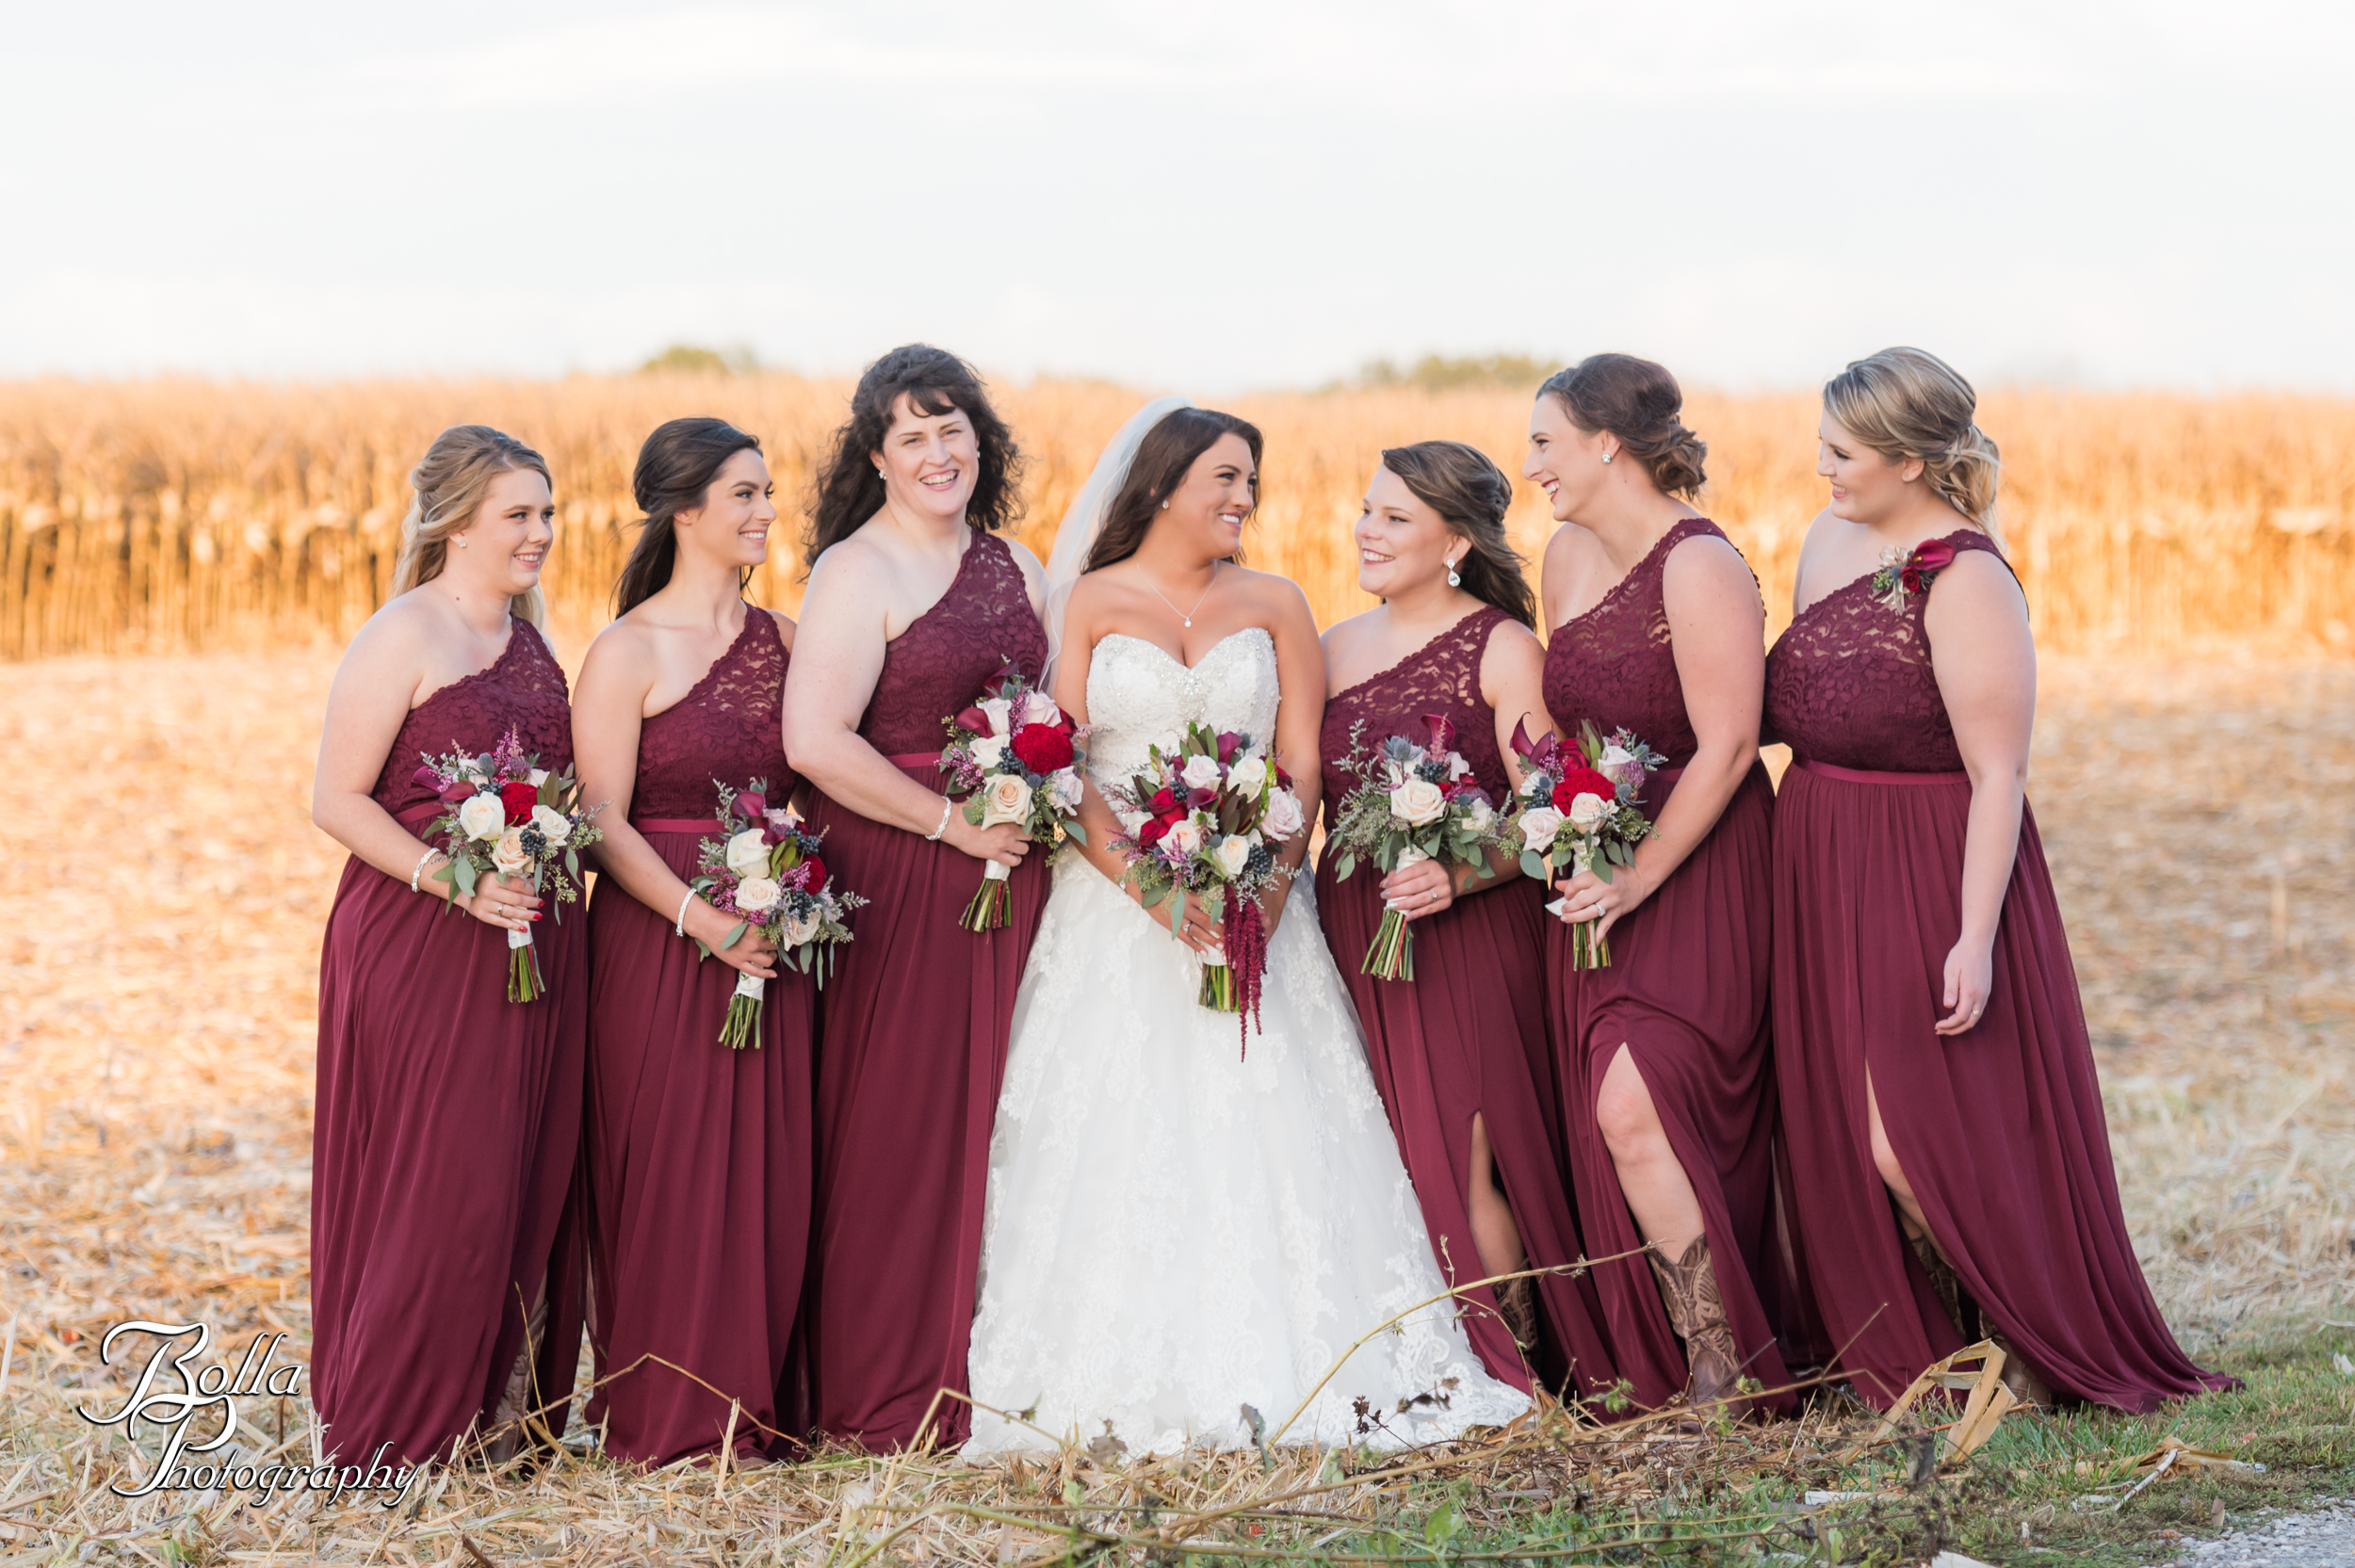 Bolla_photography_edwardsville_wedding_photographer_st_louis_weddings_Amber_Korsmeyer_Kyle_Gruner_Schwarz_Barn_blue_jeans_pickup_truck_autumn-0311.jpg